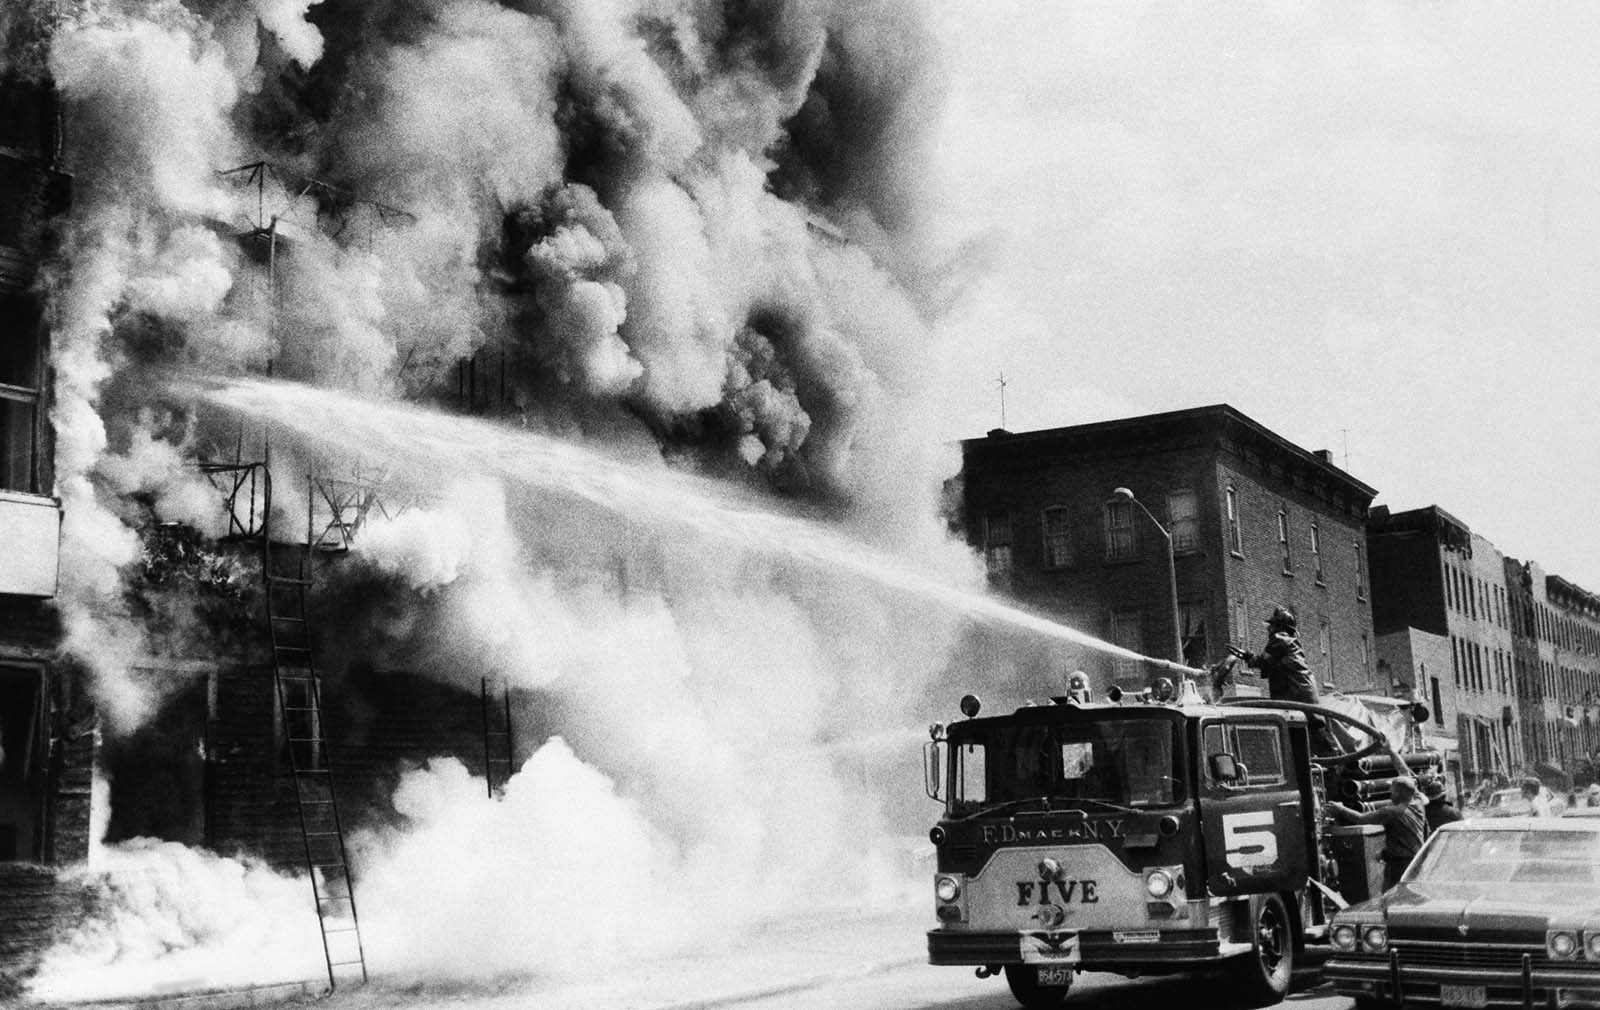 Firemen fight a blaze above a row of looted stores in New York's Brooklyn borough, July 14, 1977, the day after the power failure. The stores were looted during blackout.